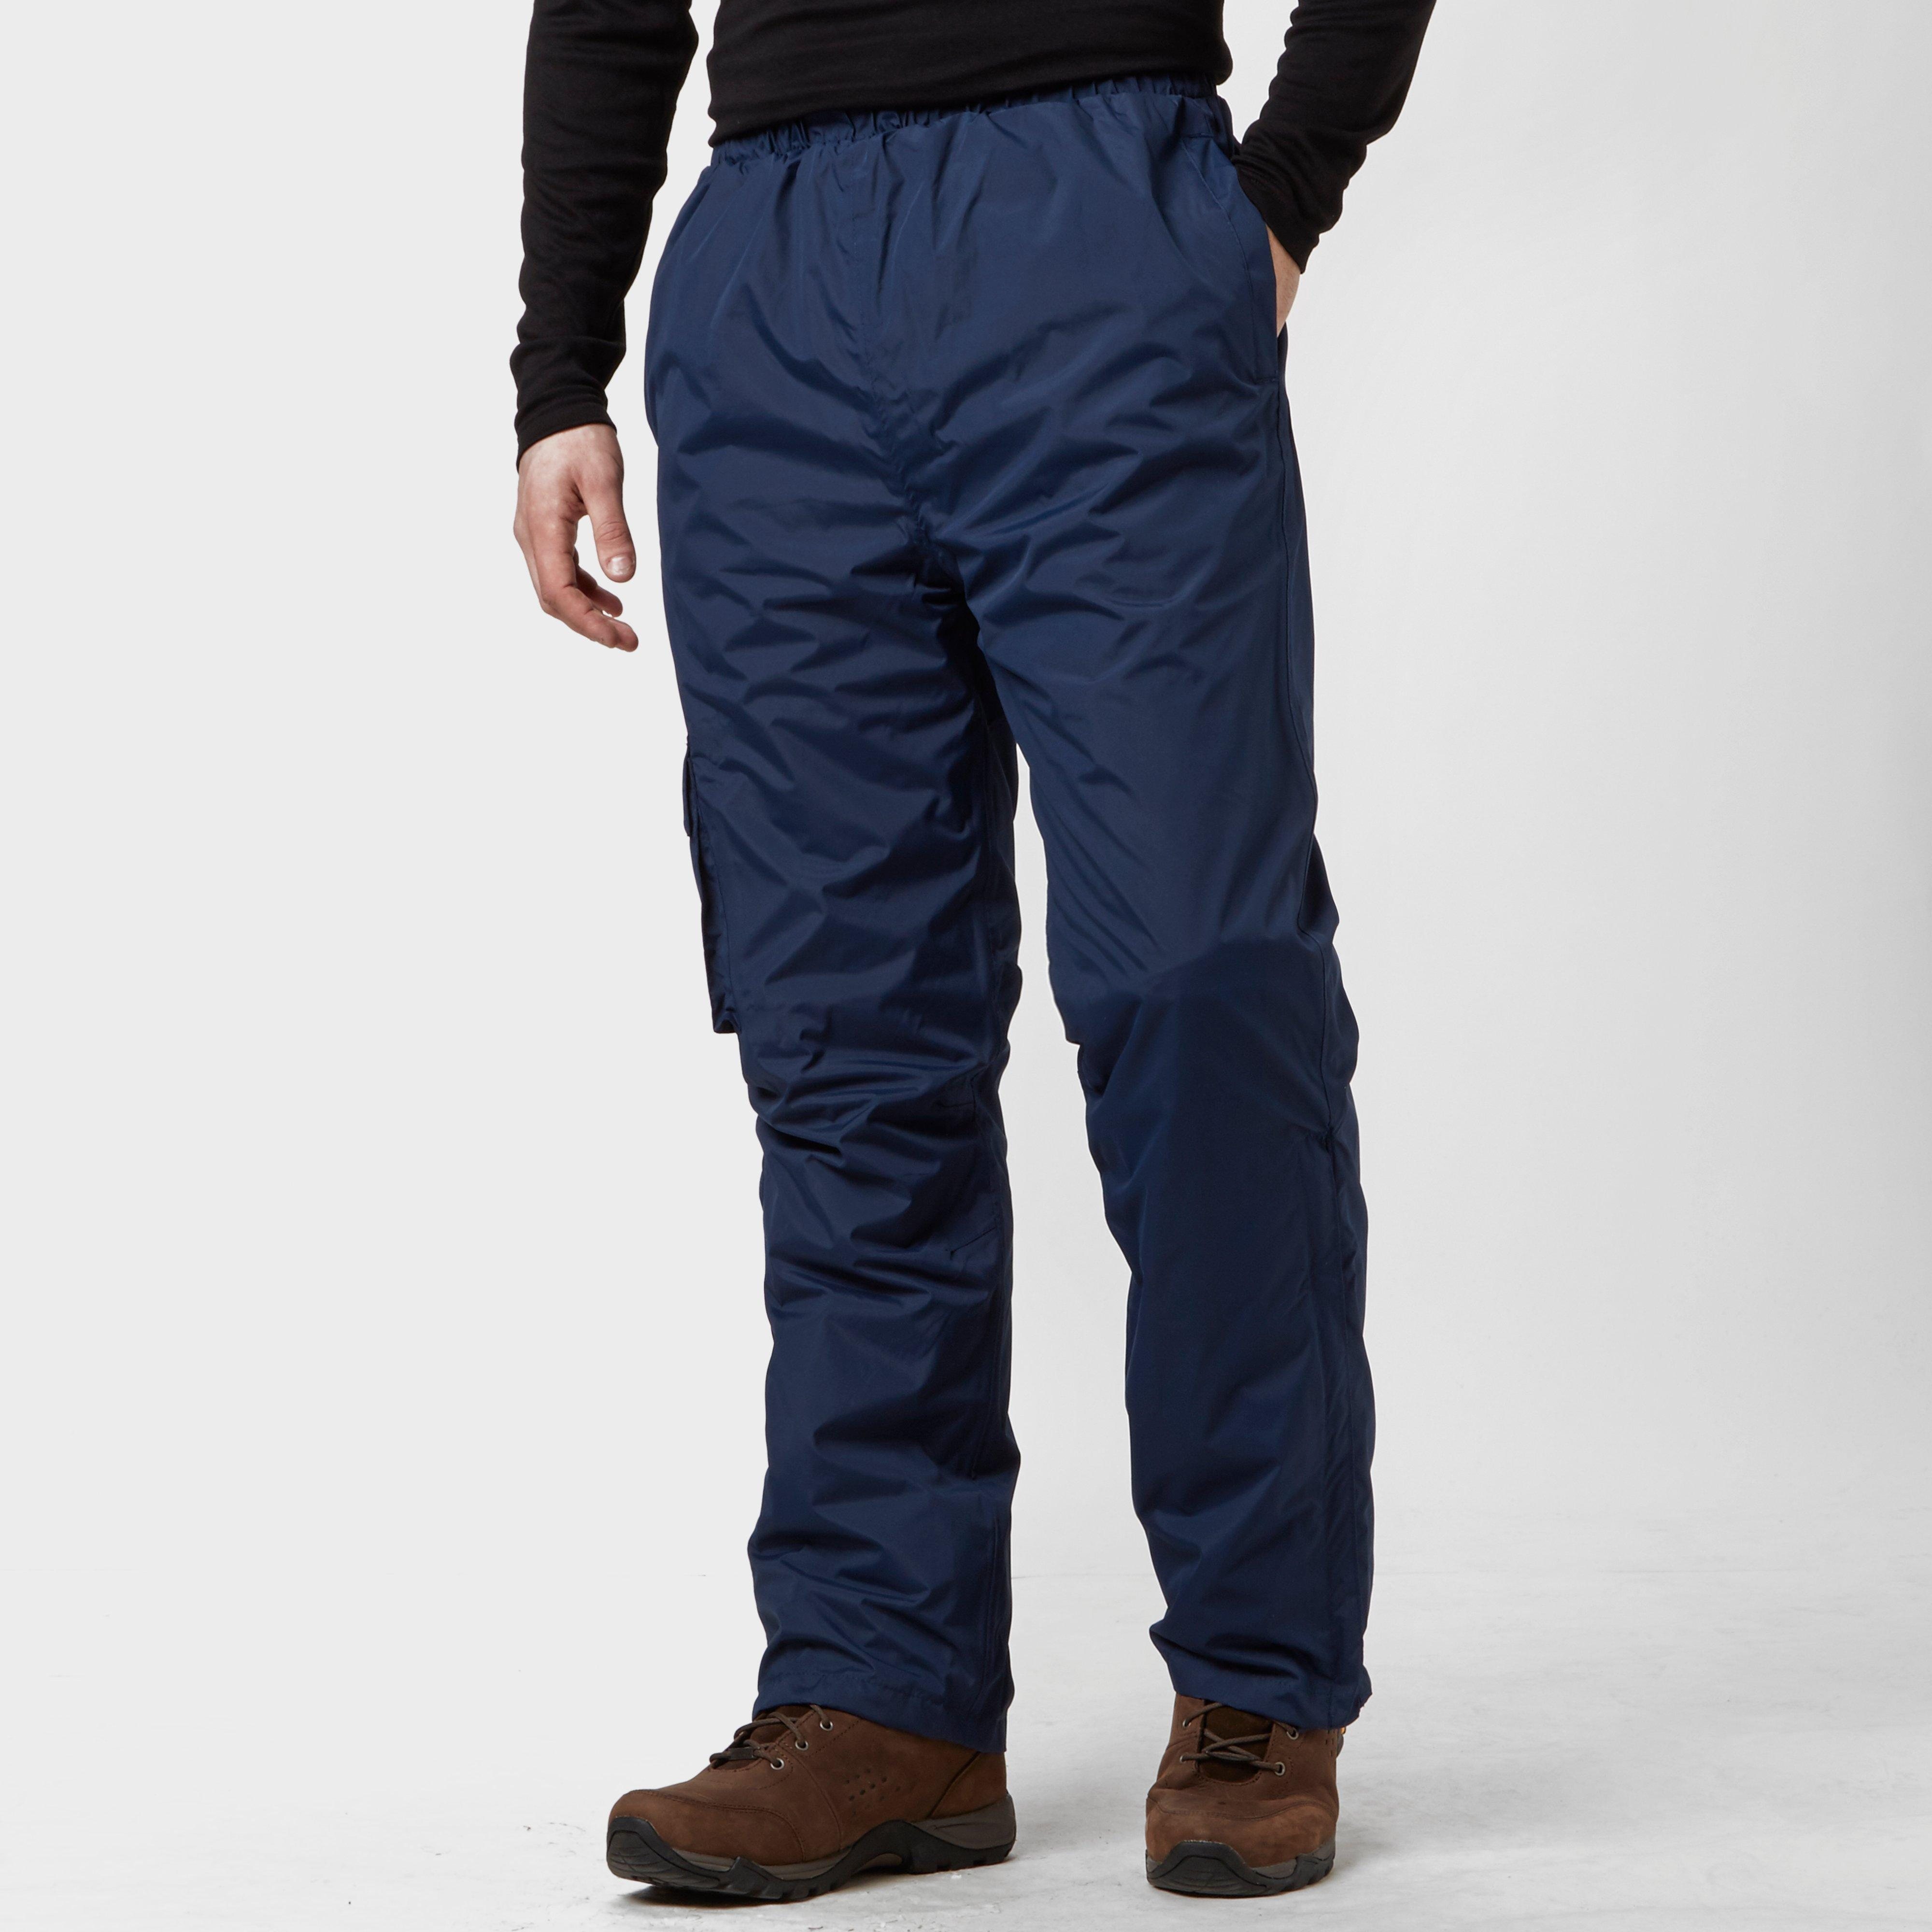 Peter Storm Mens Storm Waterproof Trousers - Navy/nvy  Navy/nvy